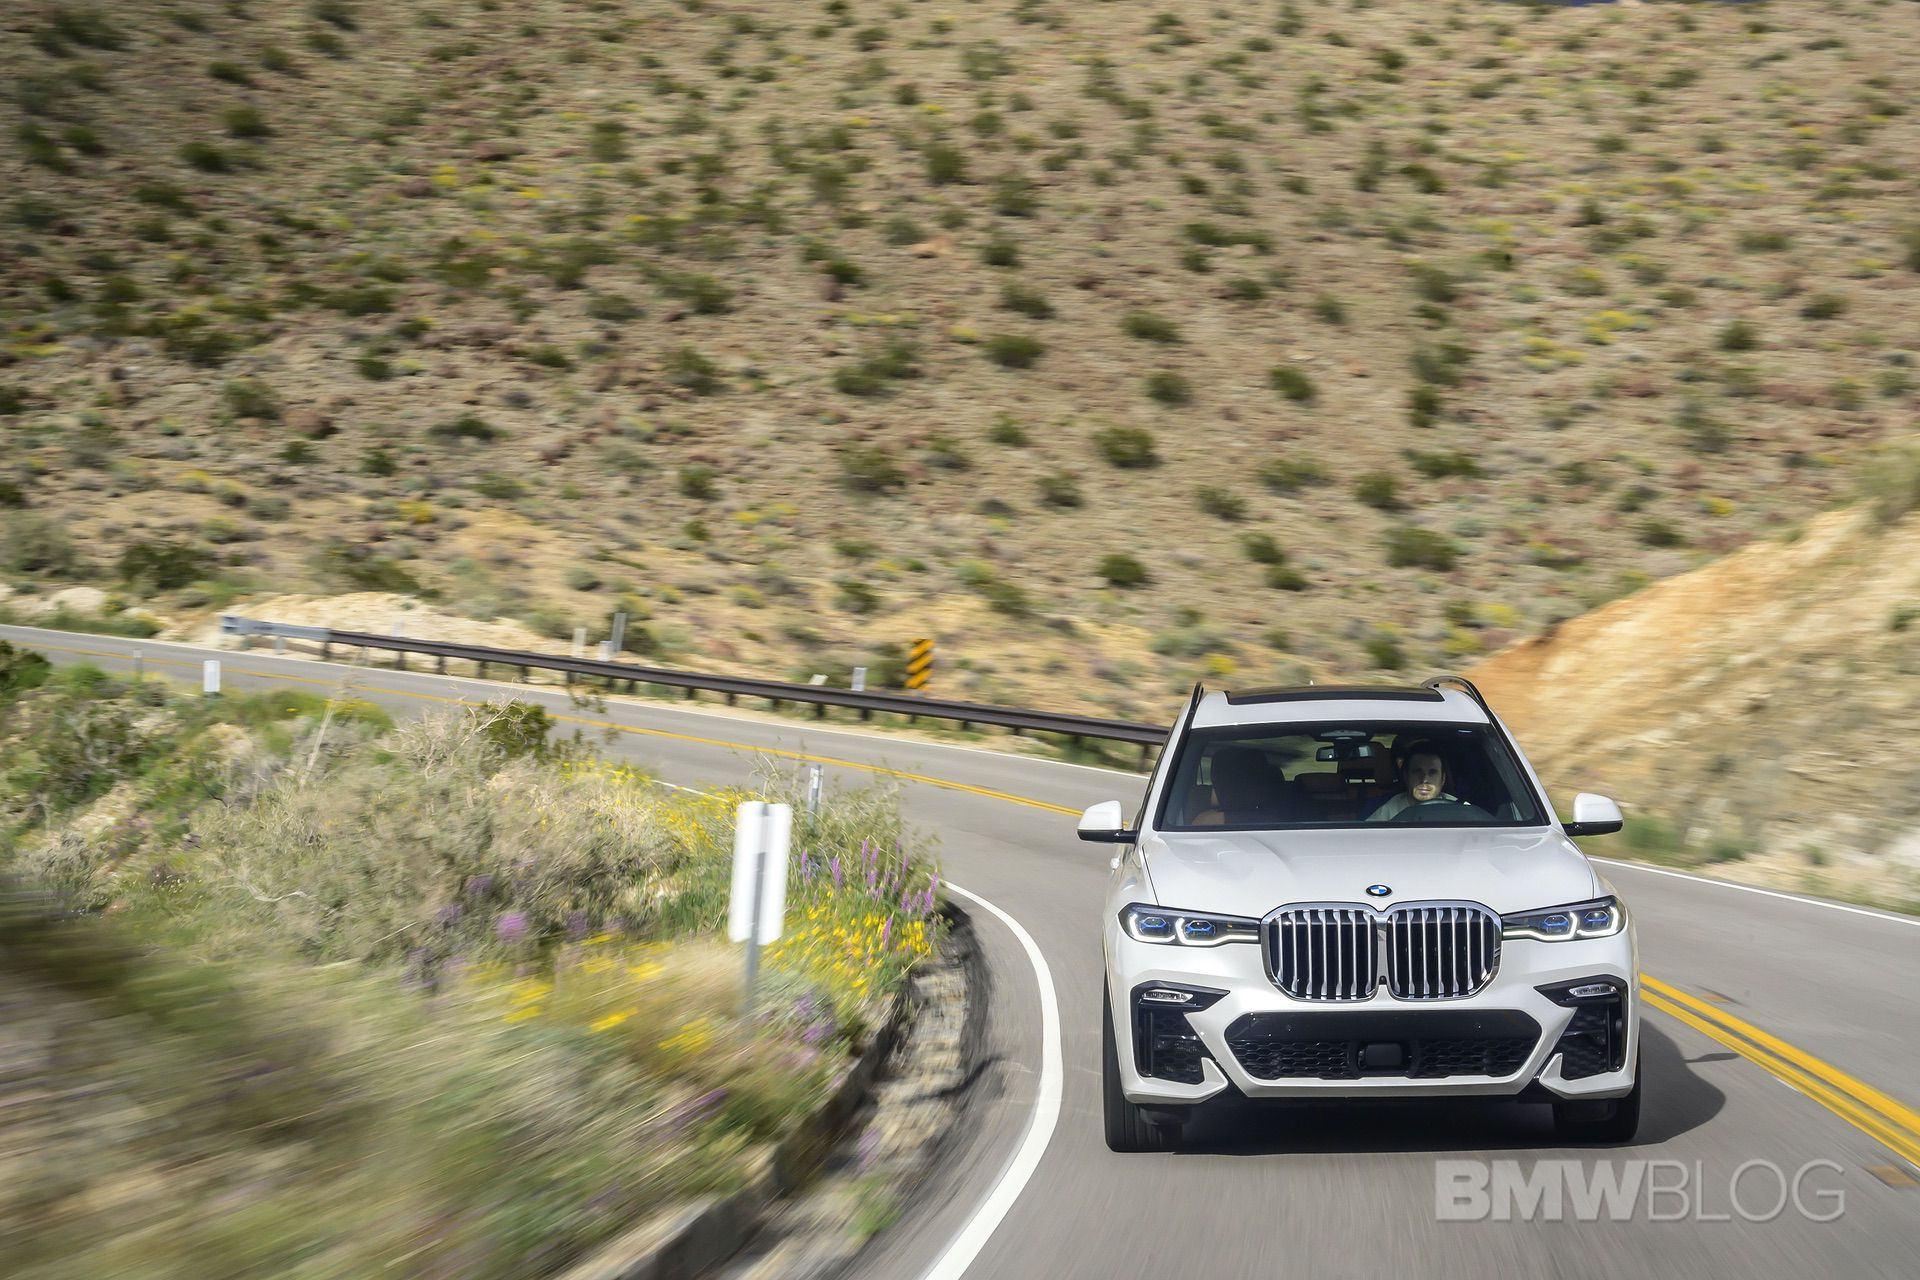 Motor Trend: BMW X7 40i 0-60 mph in 5.4 seconds